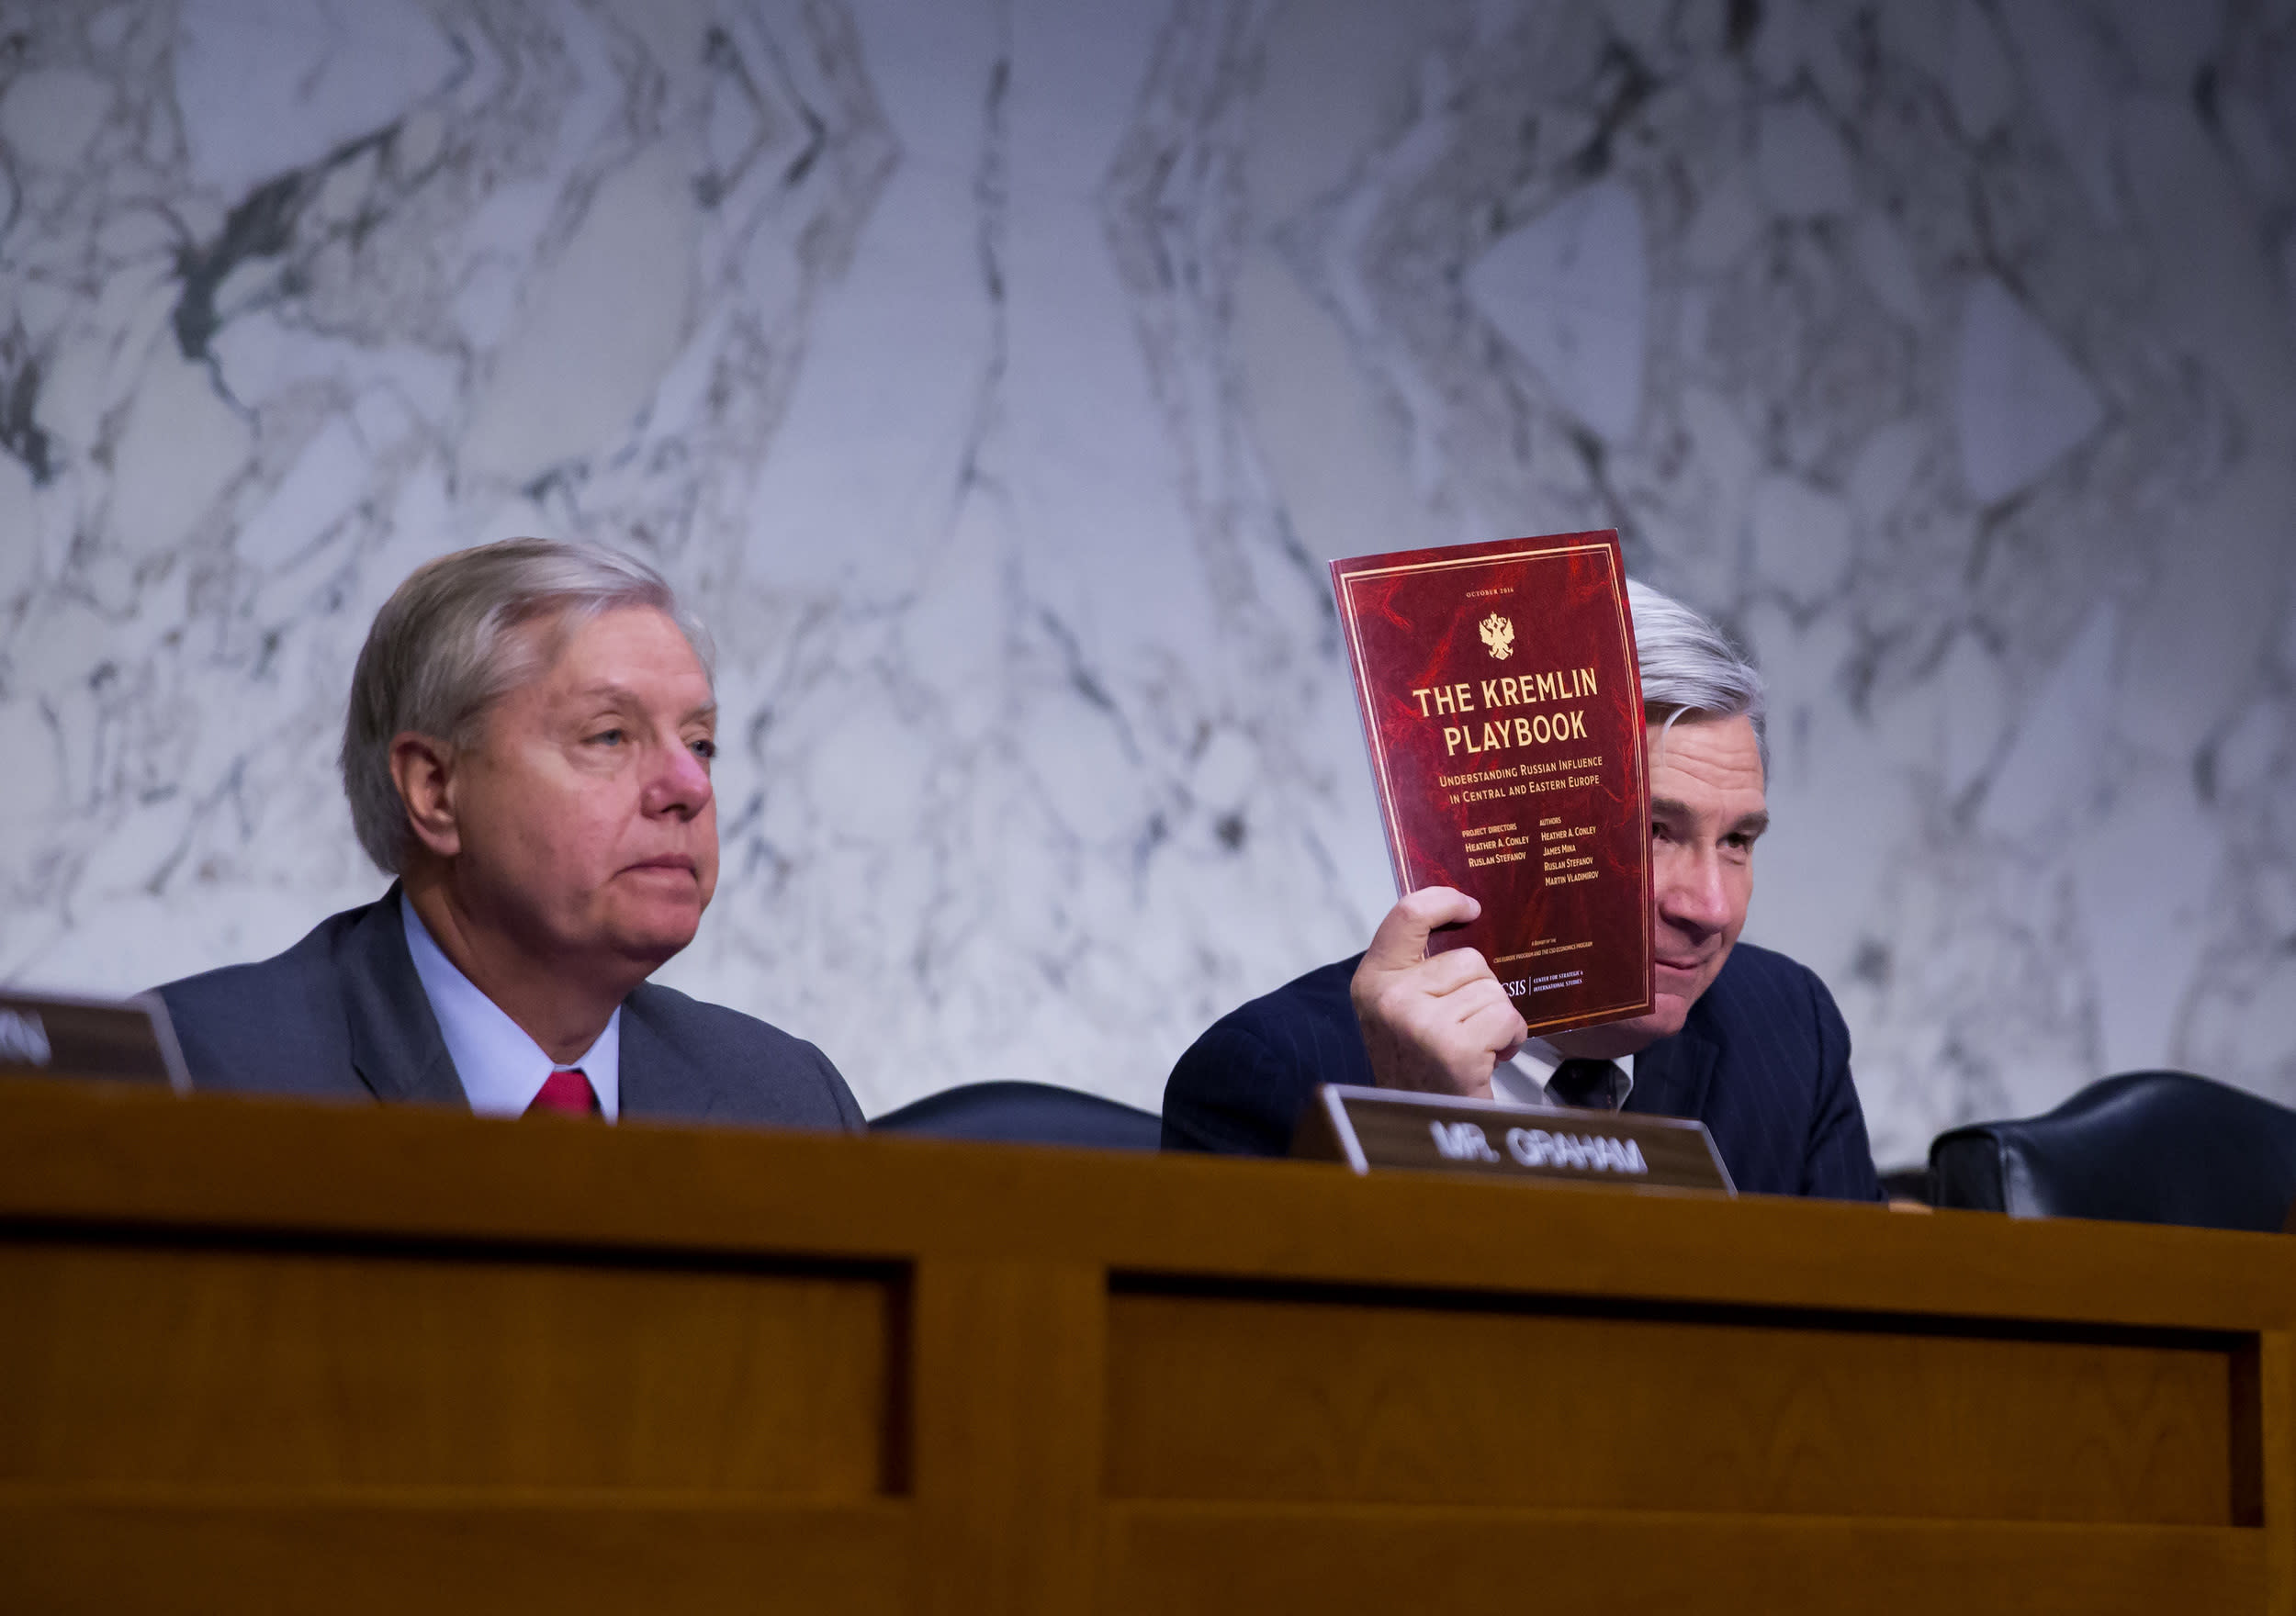 WASHINGTON, DC - MAY 8:  Sen. Sheldon Whitehouse (D-RI) holds up a copy of 'The Kremlin Playbook' as Sen. Lindsay Graham (R-SC) listens at a hearing of the Senate Judicary Committee's Subcommittee on Crime and Terrorism in the Hart Senate Office Building on Capitol Hill May 8, 2017 in Washington, DC. Before being fired by U.S. President Donald Trump, Yates testified that she had warned the White House about contacts between former National Security Advisor Michael Flynn and Russia that might make him vulnerable to blackmail. (Photo by Eric Thayer/Getty Images)